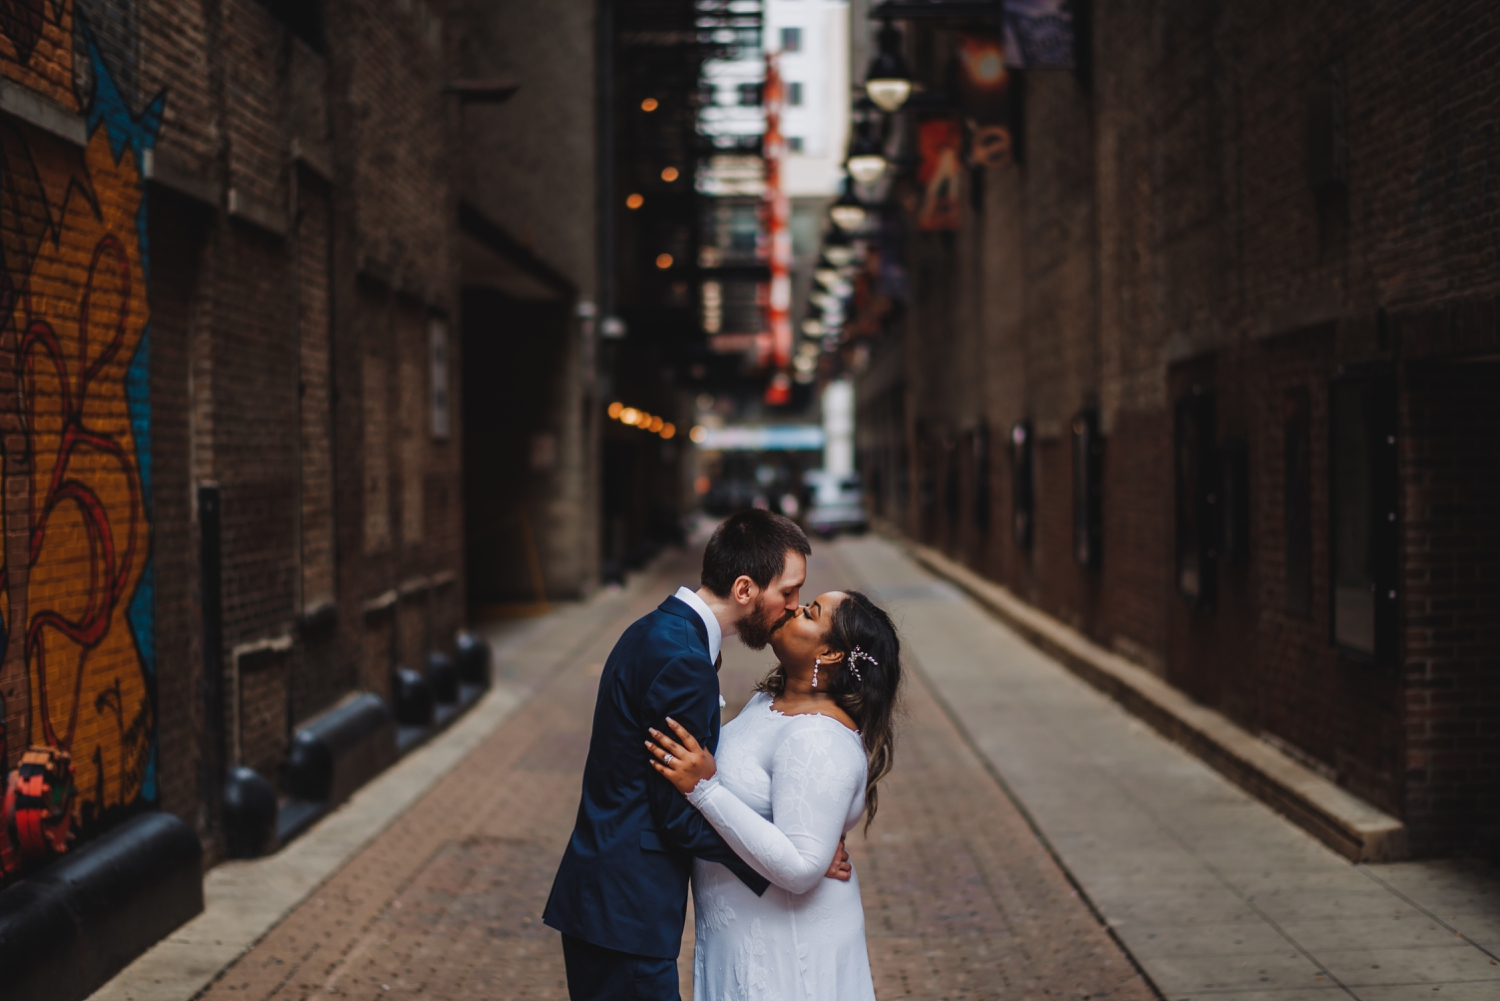 Chicago Elopement photographer - The Adamkovi, bride and groom kissing in the alley